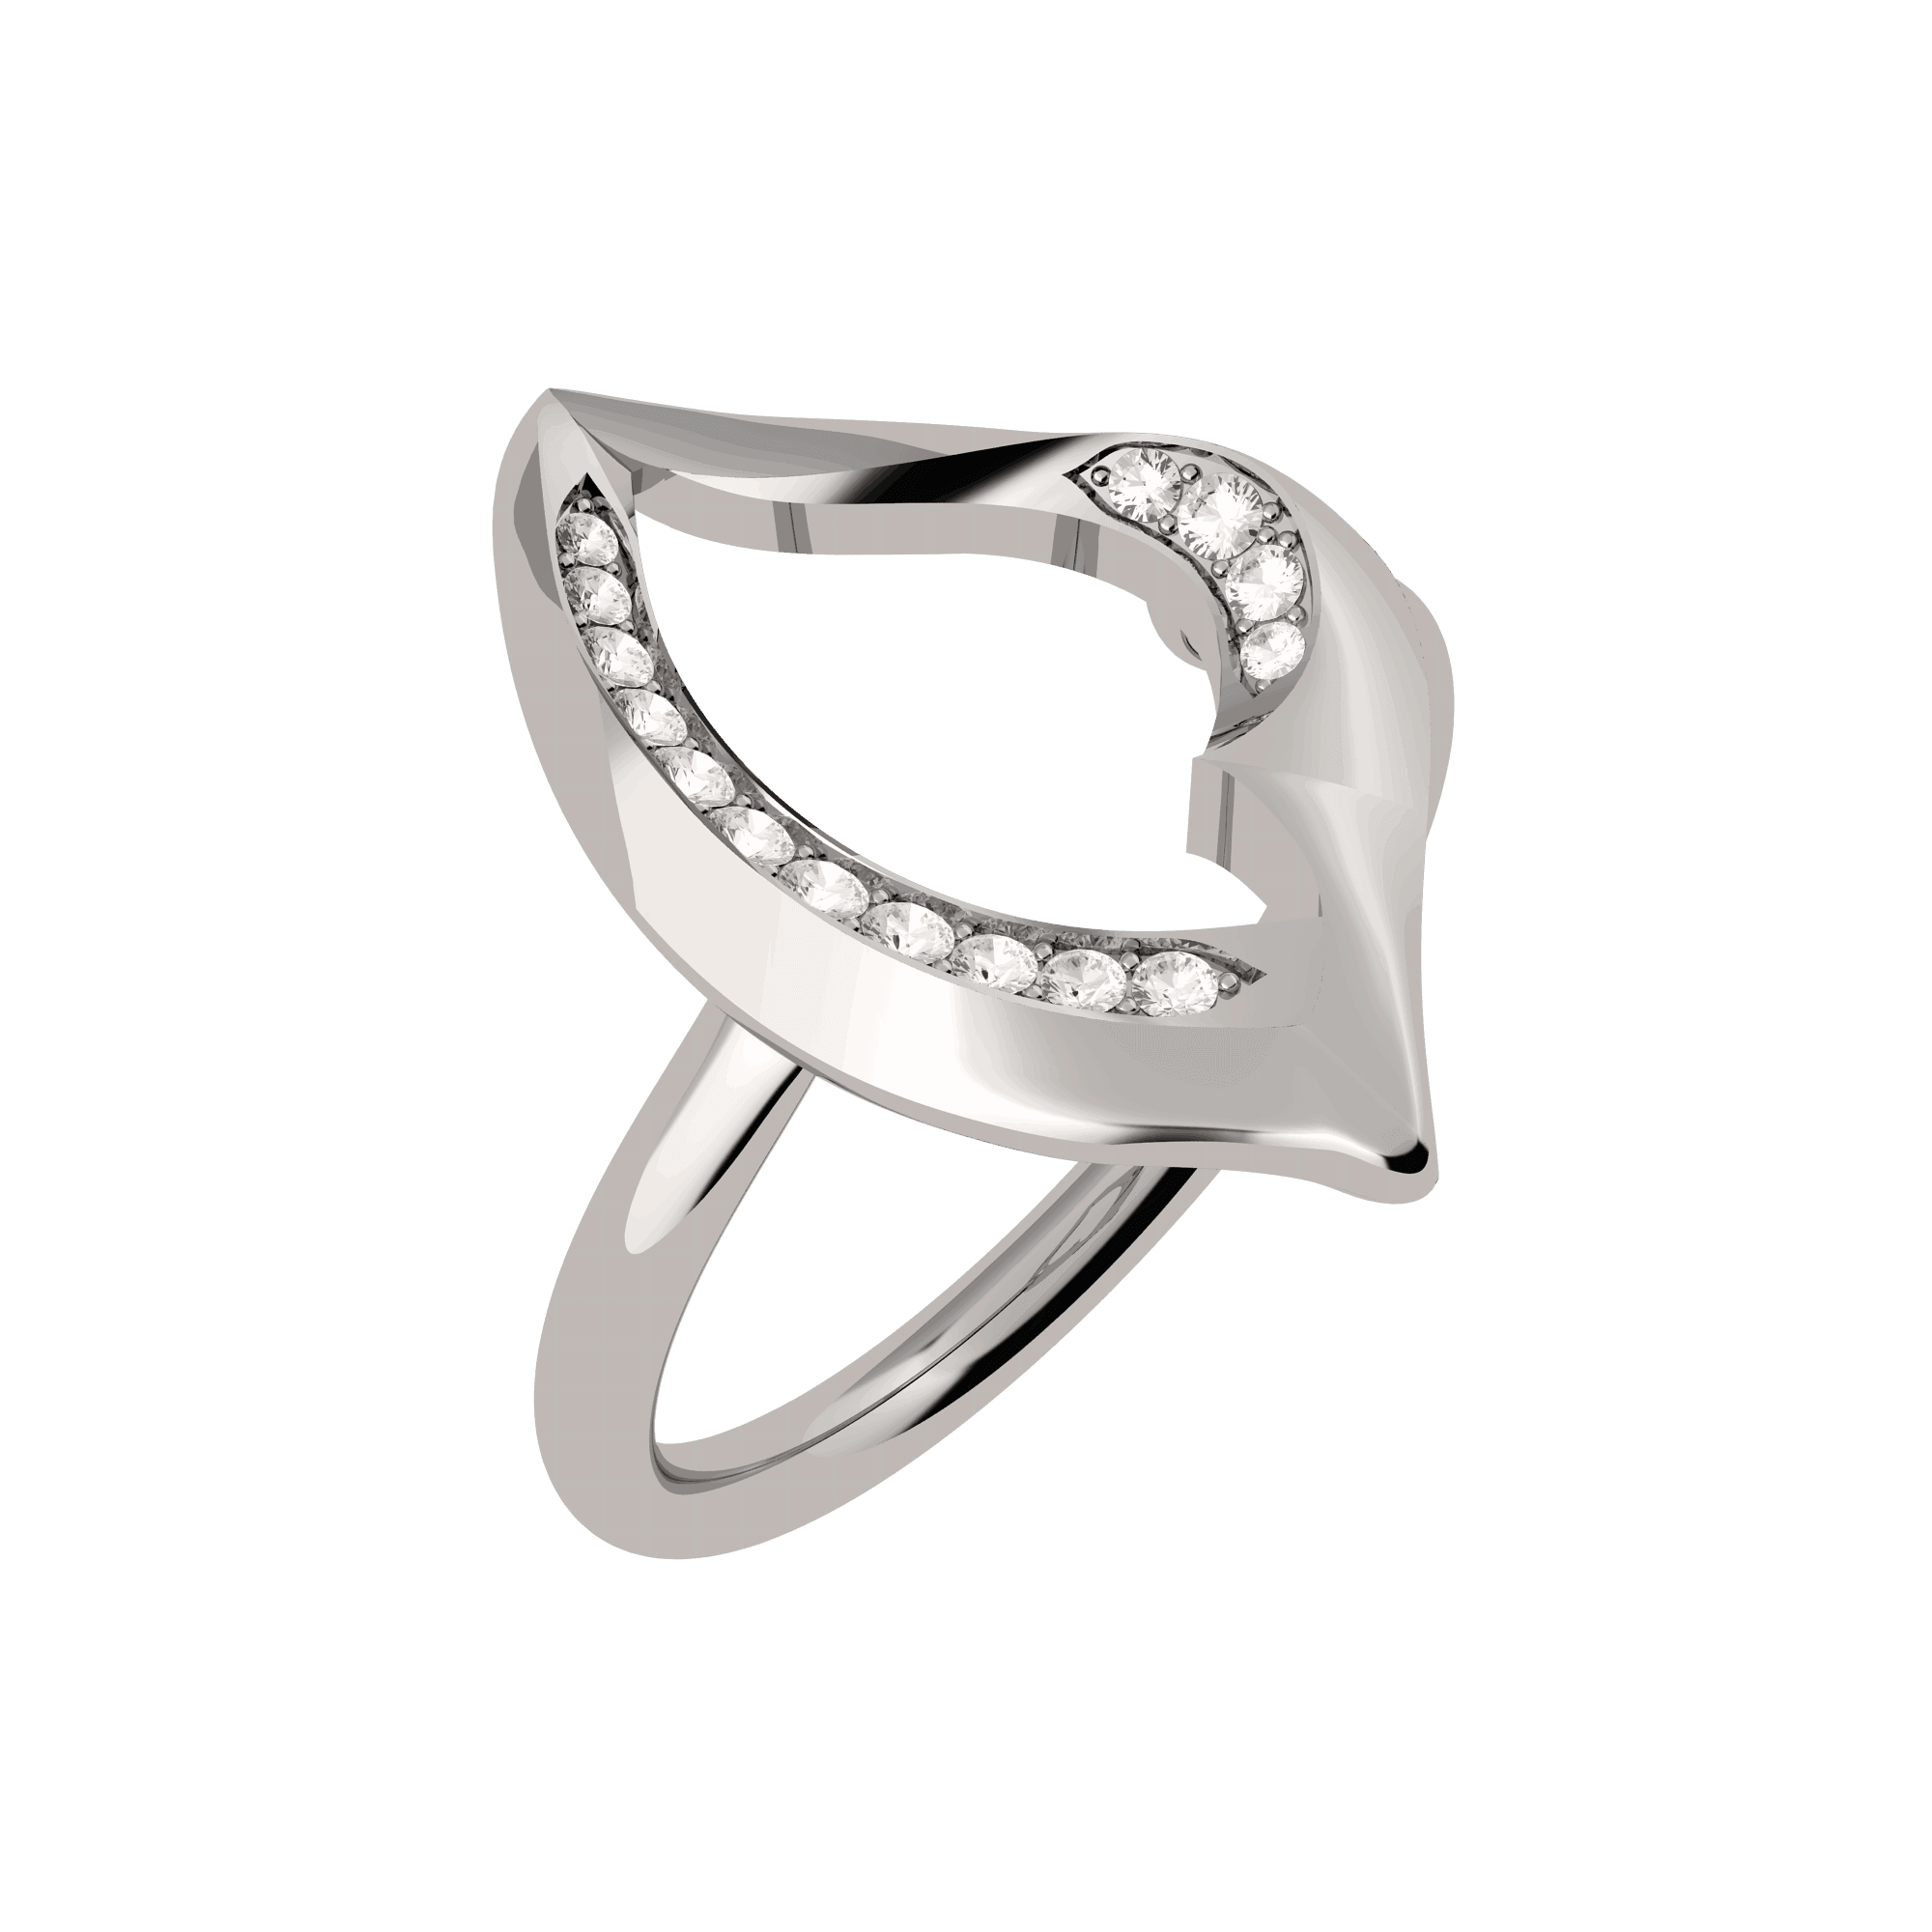 27753 - Vinyasa Natural White Gold and Diamond Hollow Ring